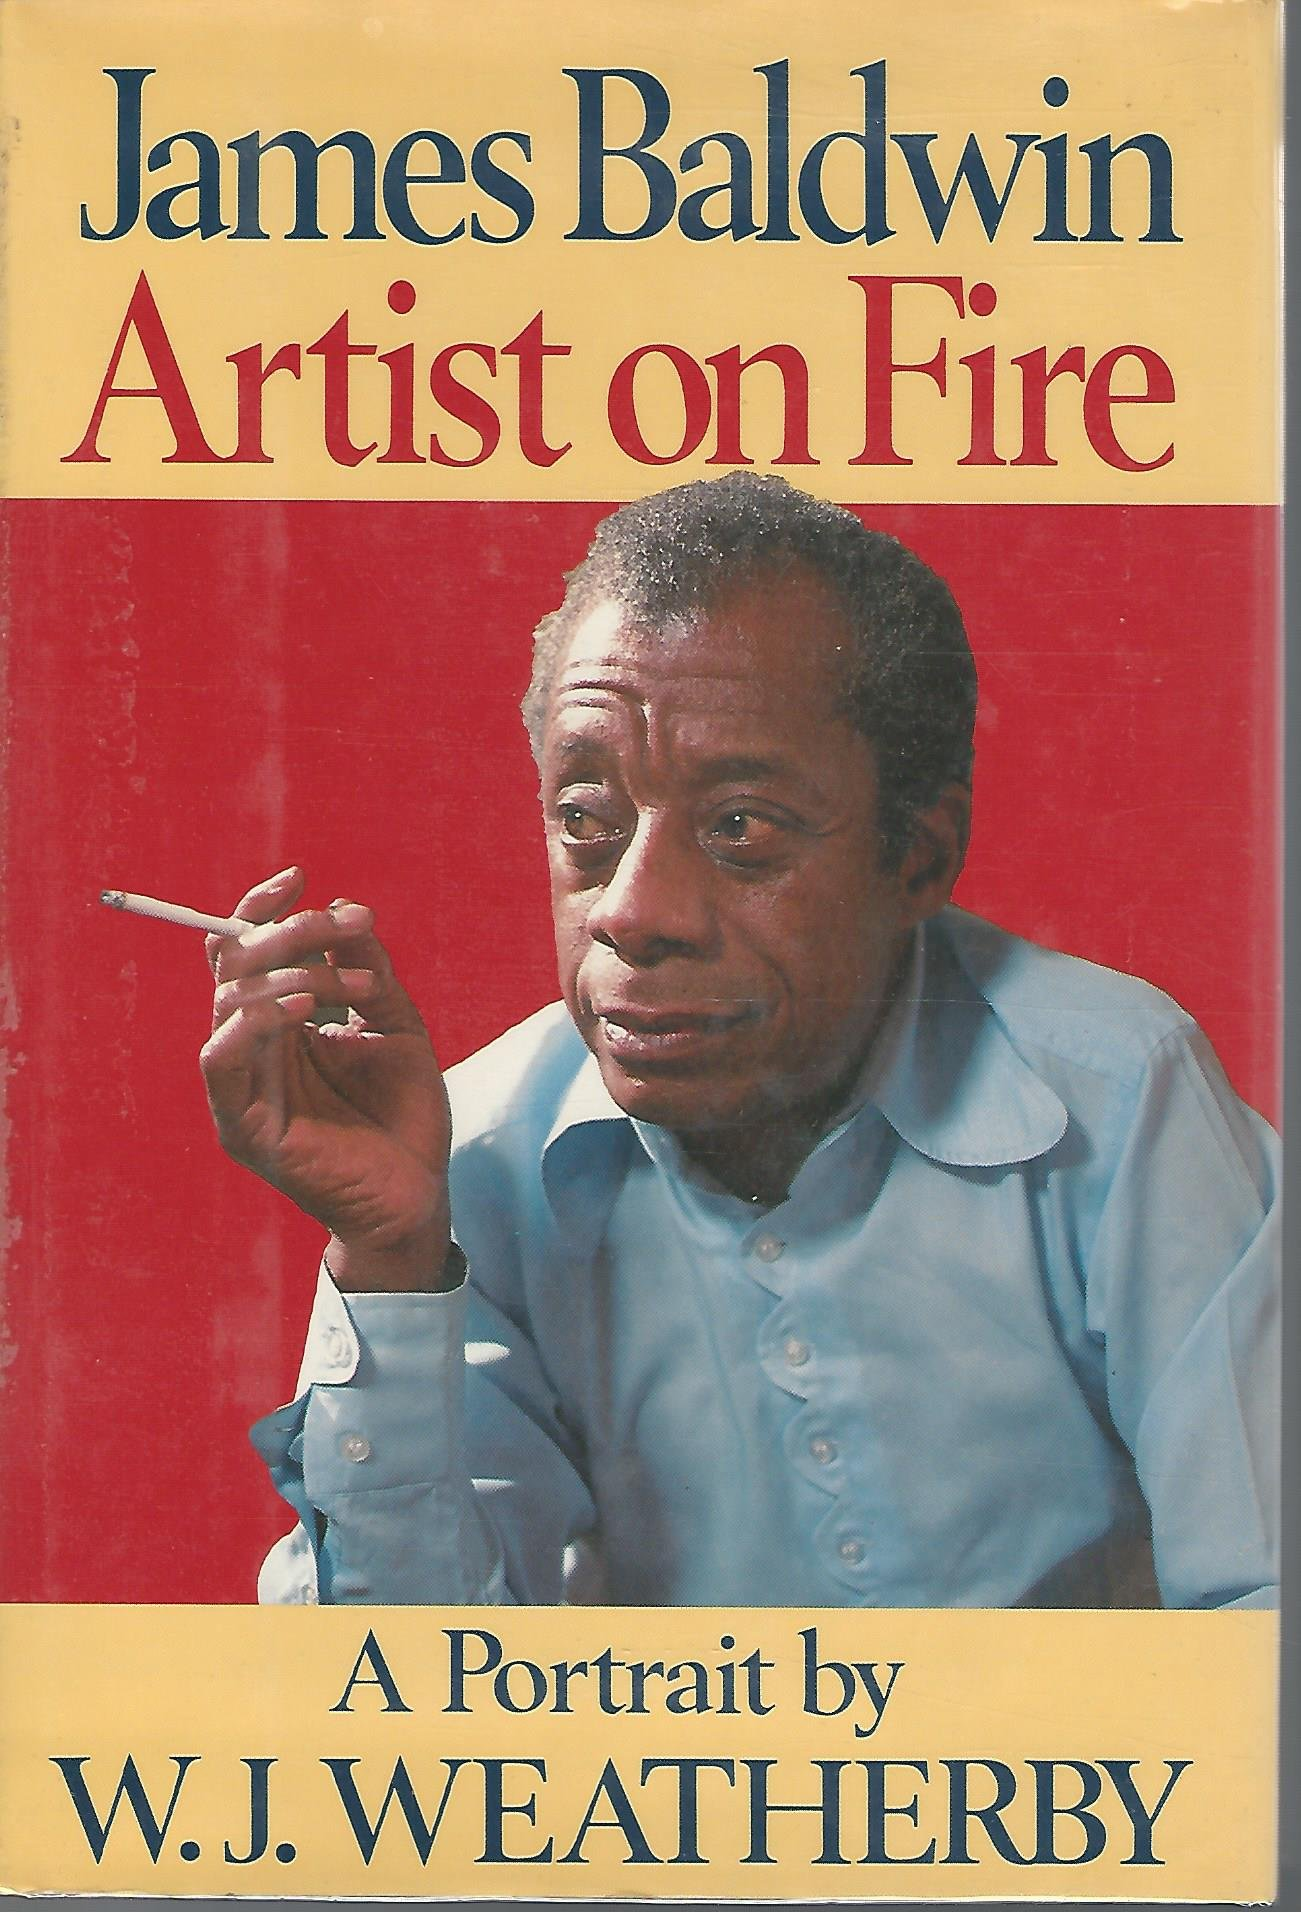 james baldwin artist on fire a portrait w j weatherby james baldwin artist on fire a portrait w j weatherby 9781556111266 com books